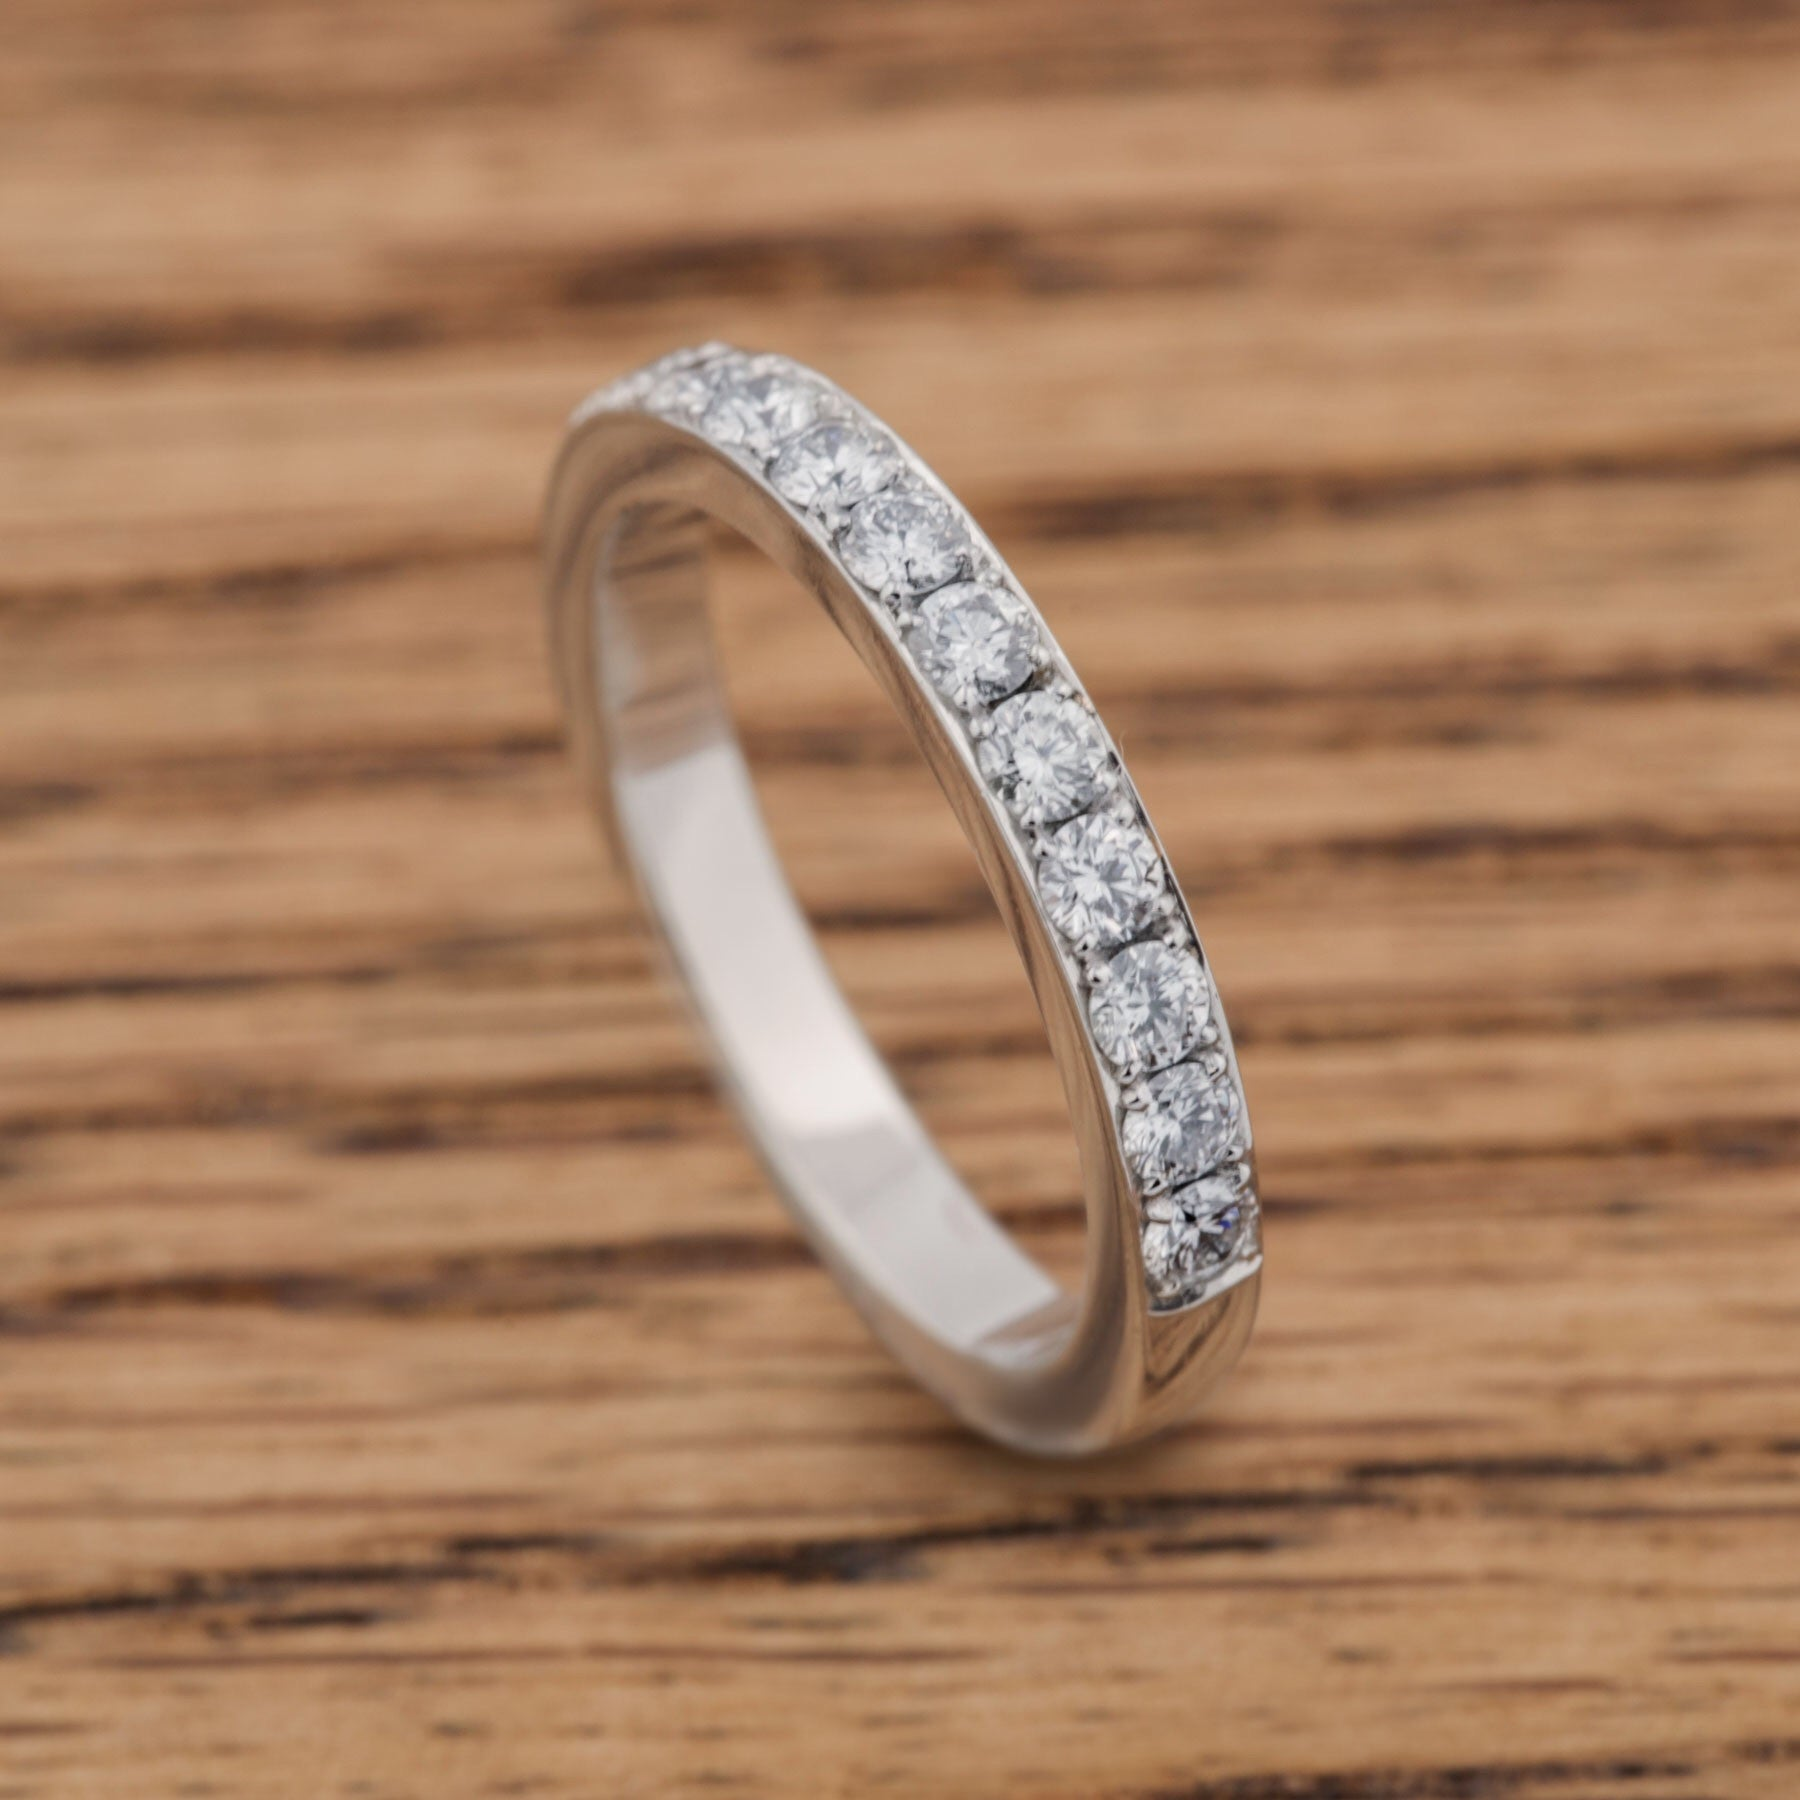 Pave band in white gold Diamond Wedding Band - Era Design Vancouver